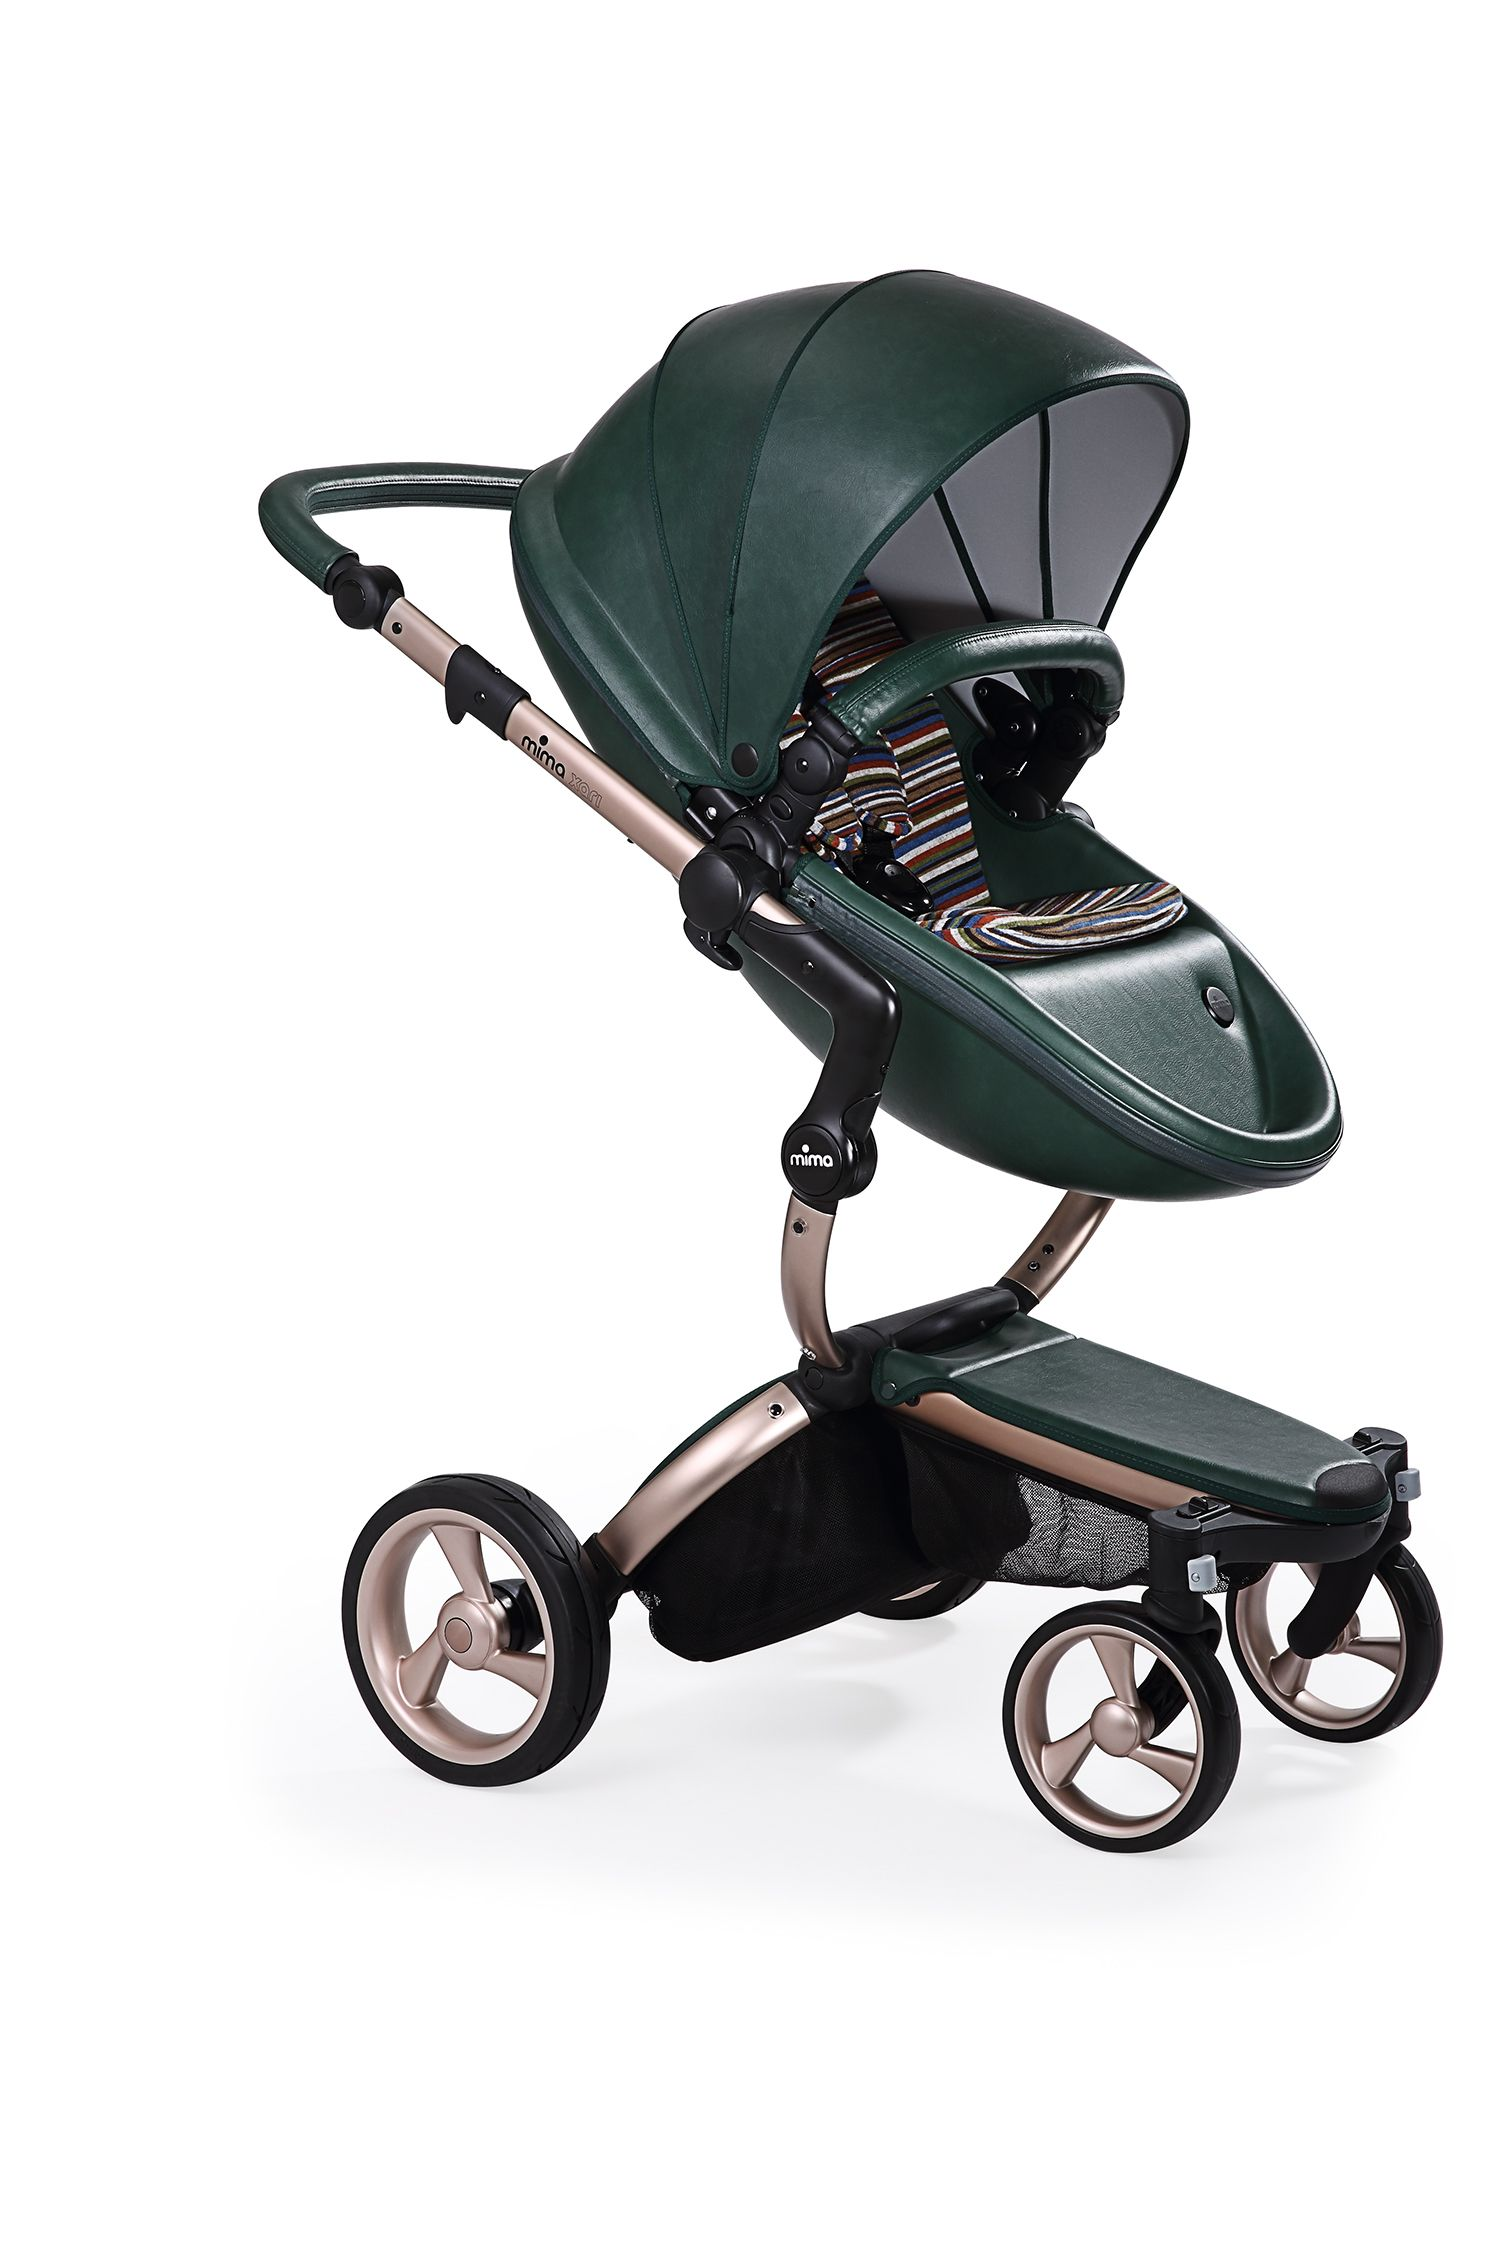 Racing Green mima xari due end of January. This colour